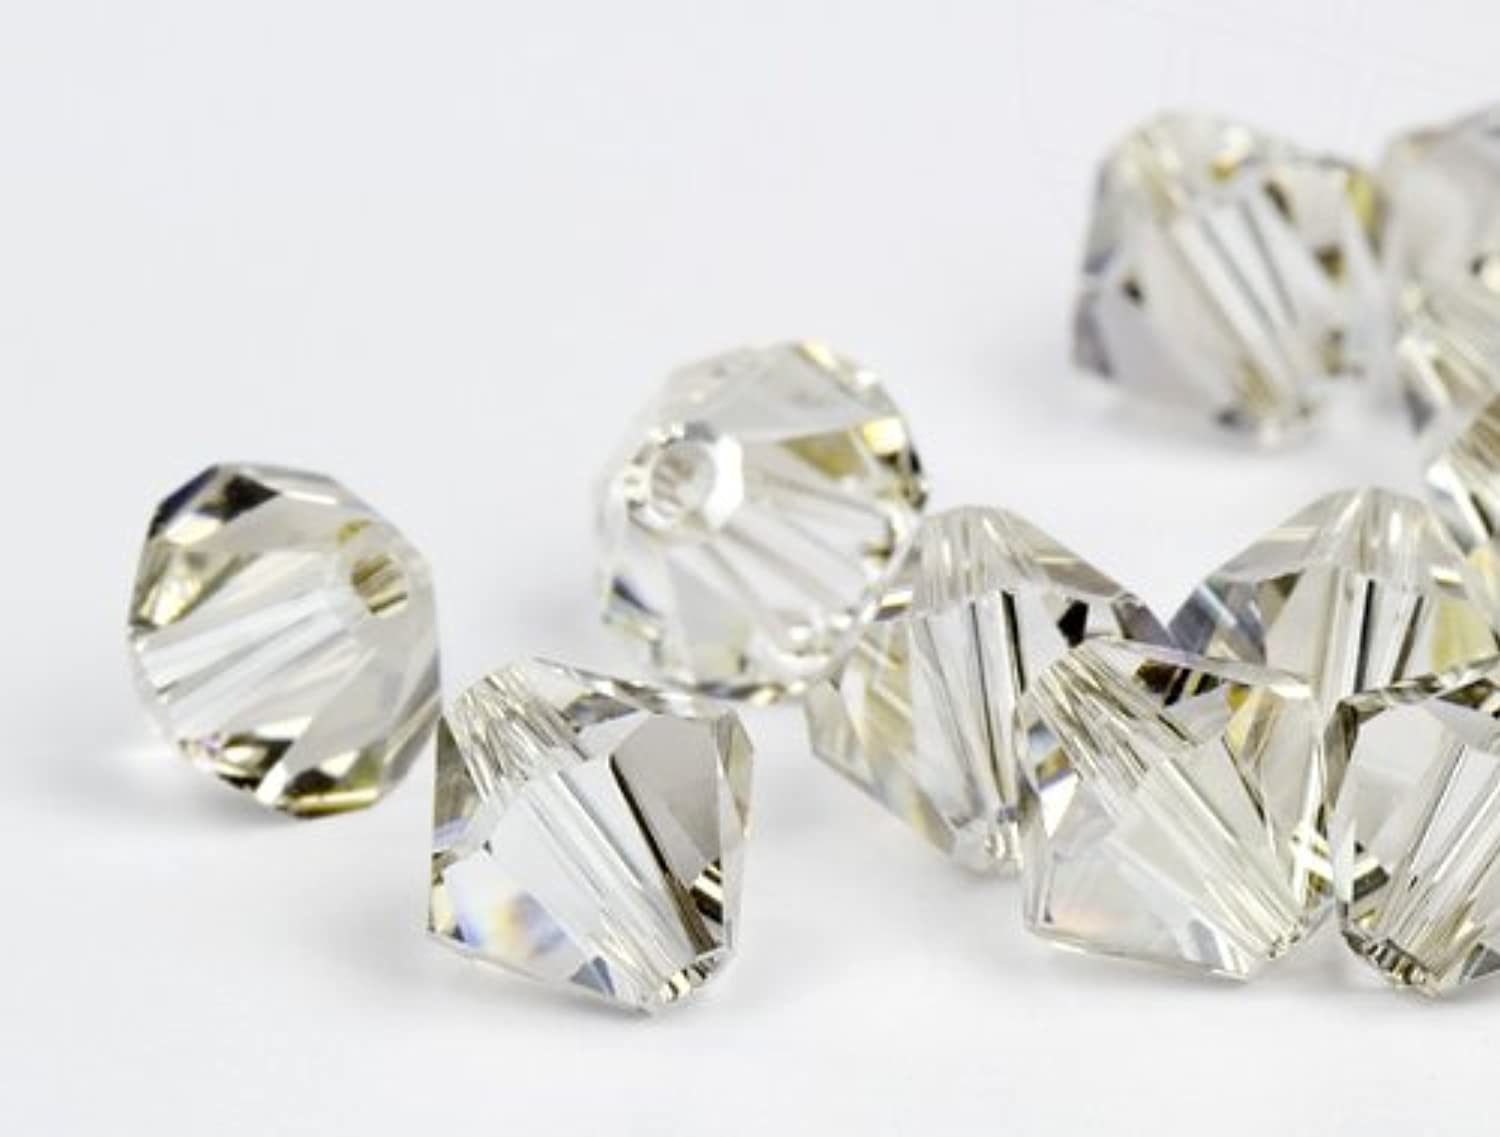 Glass Beads of Swarovski Elements Bicone 3mm (Crystal-Silver Shade), 1440 Pieces (10 Gross)